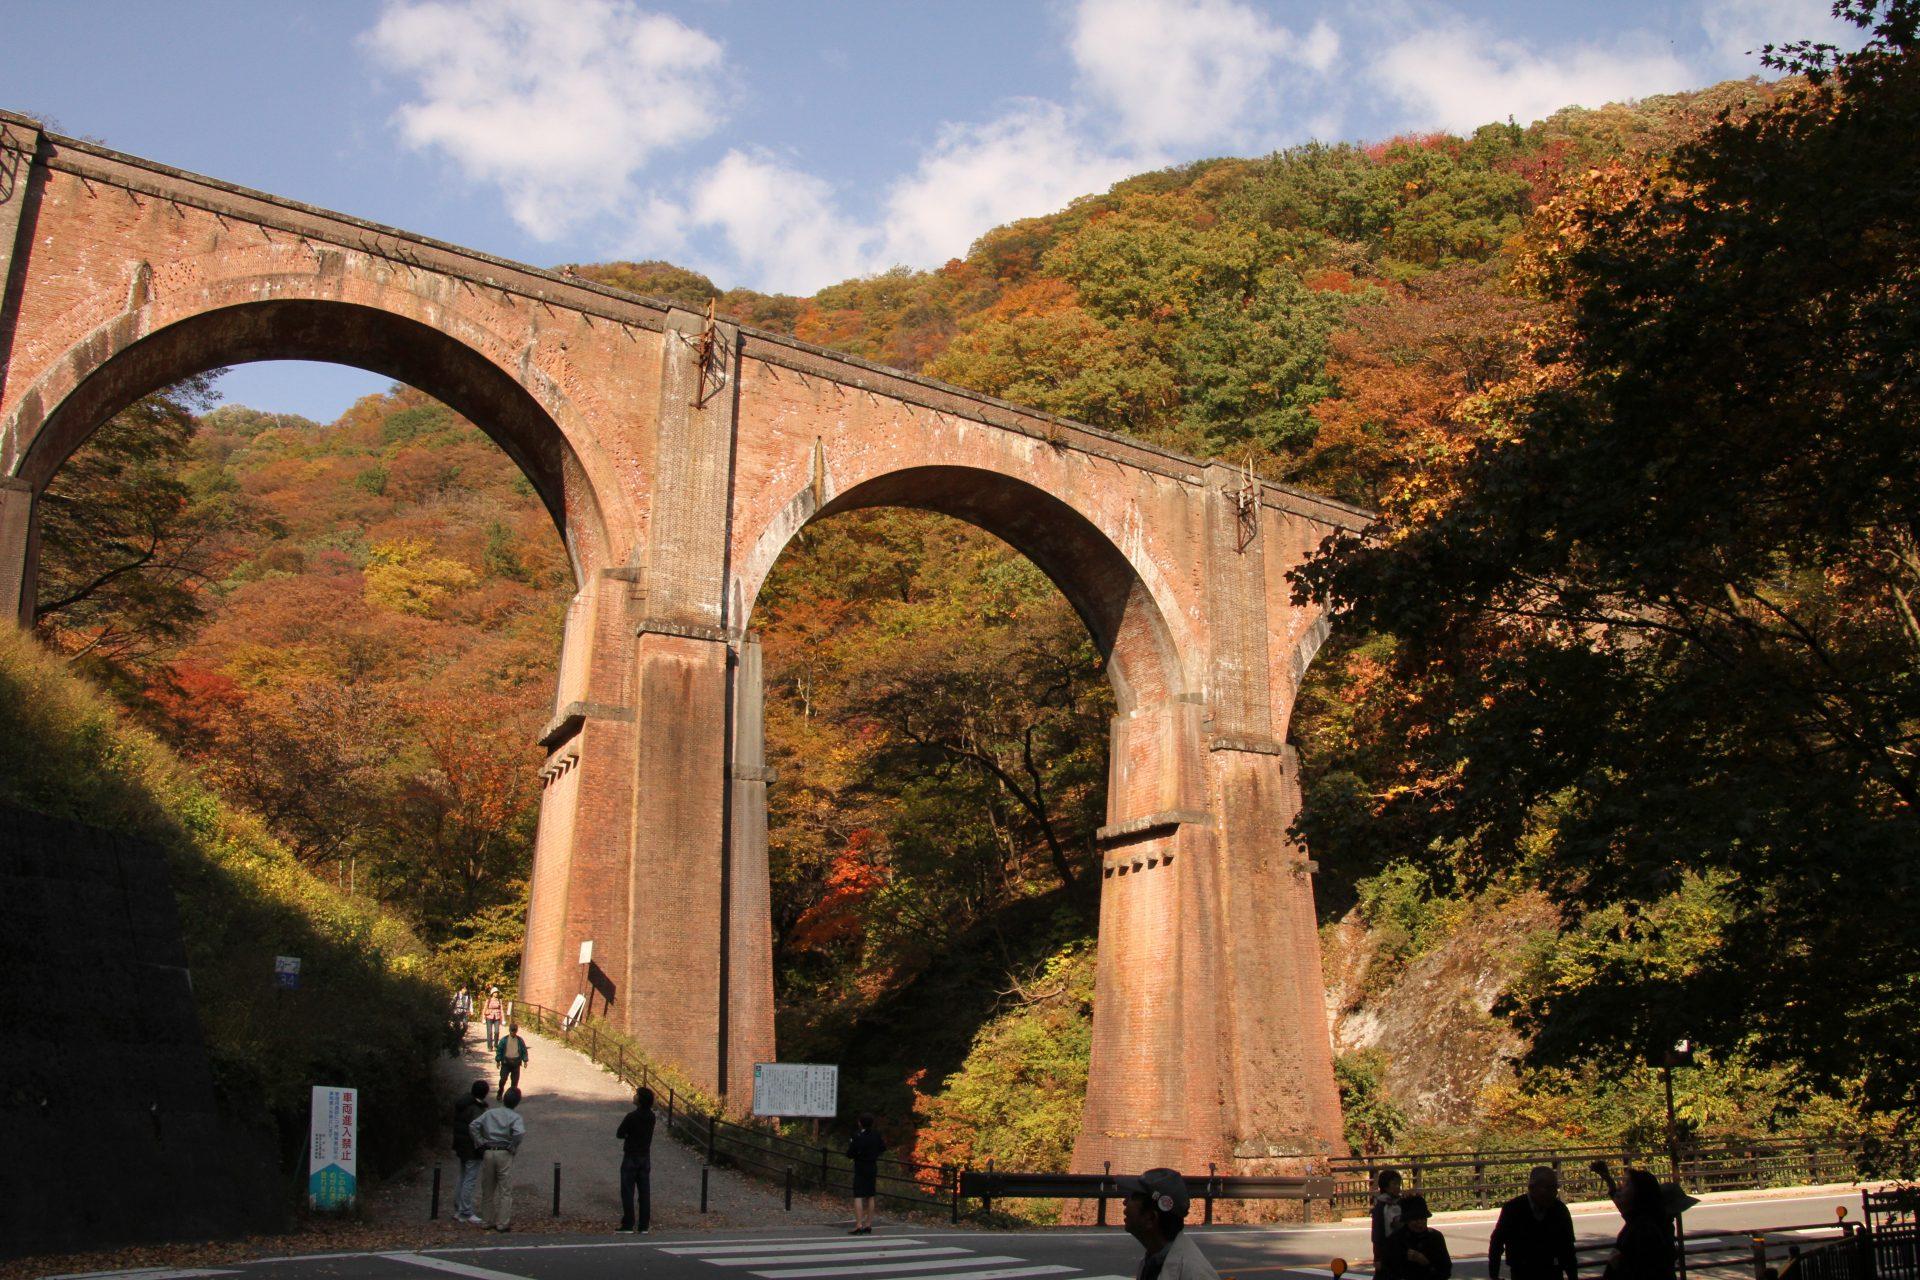 Megane Bridge: Japan's Largest Arch Bridge (Usui Bridge #3)